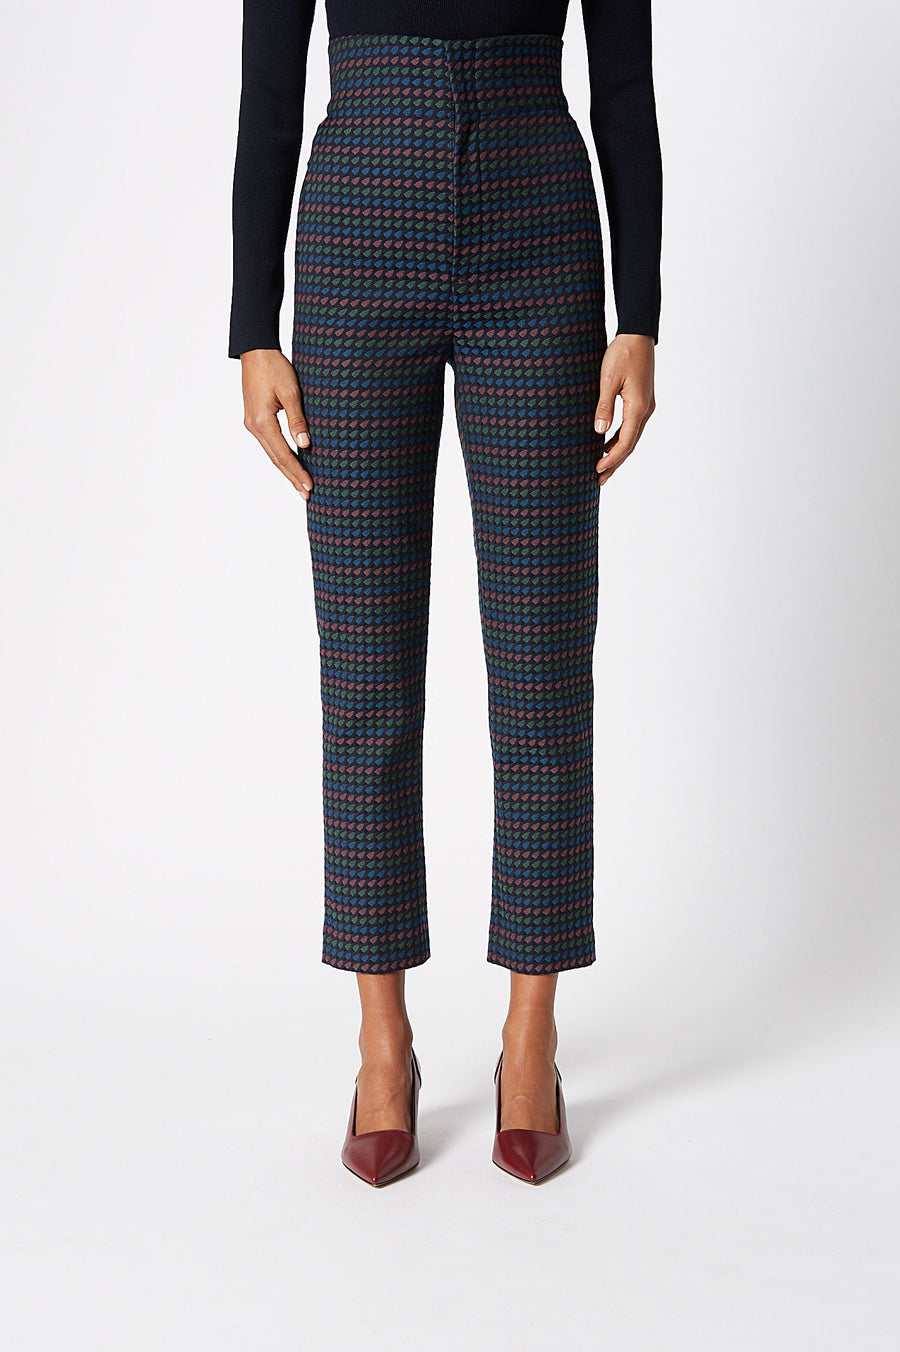 Jacquard High Waist Trouser, sits high on the waist, zip button fastening, belt loops on waistline, slim-leg silhouette, hits just above ankle, color navy